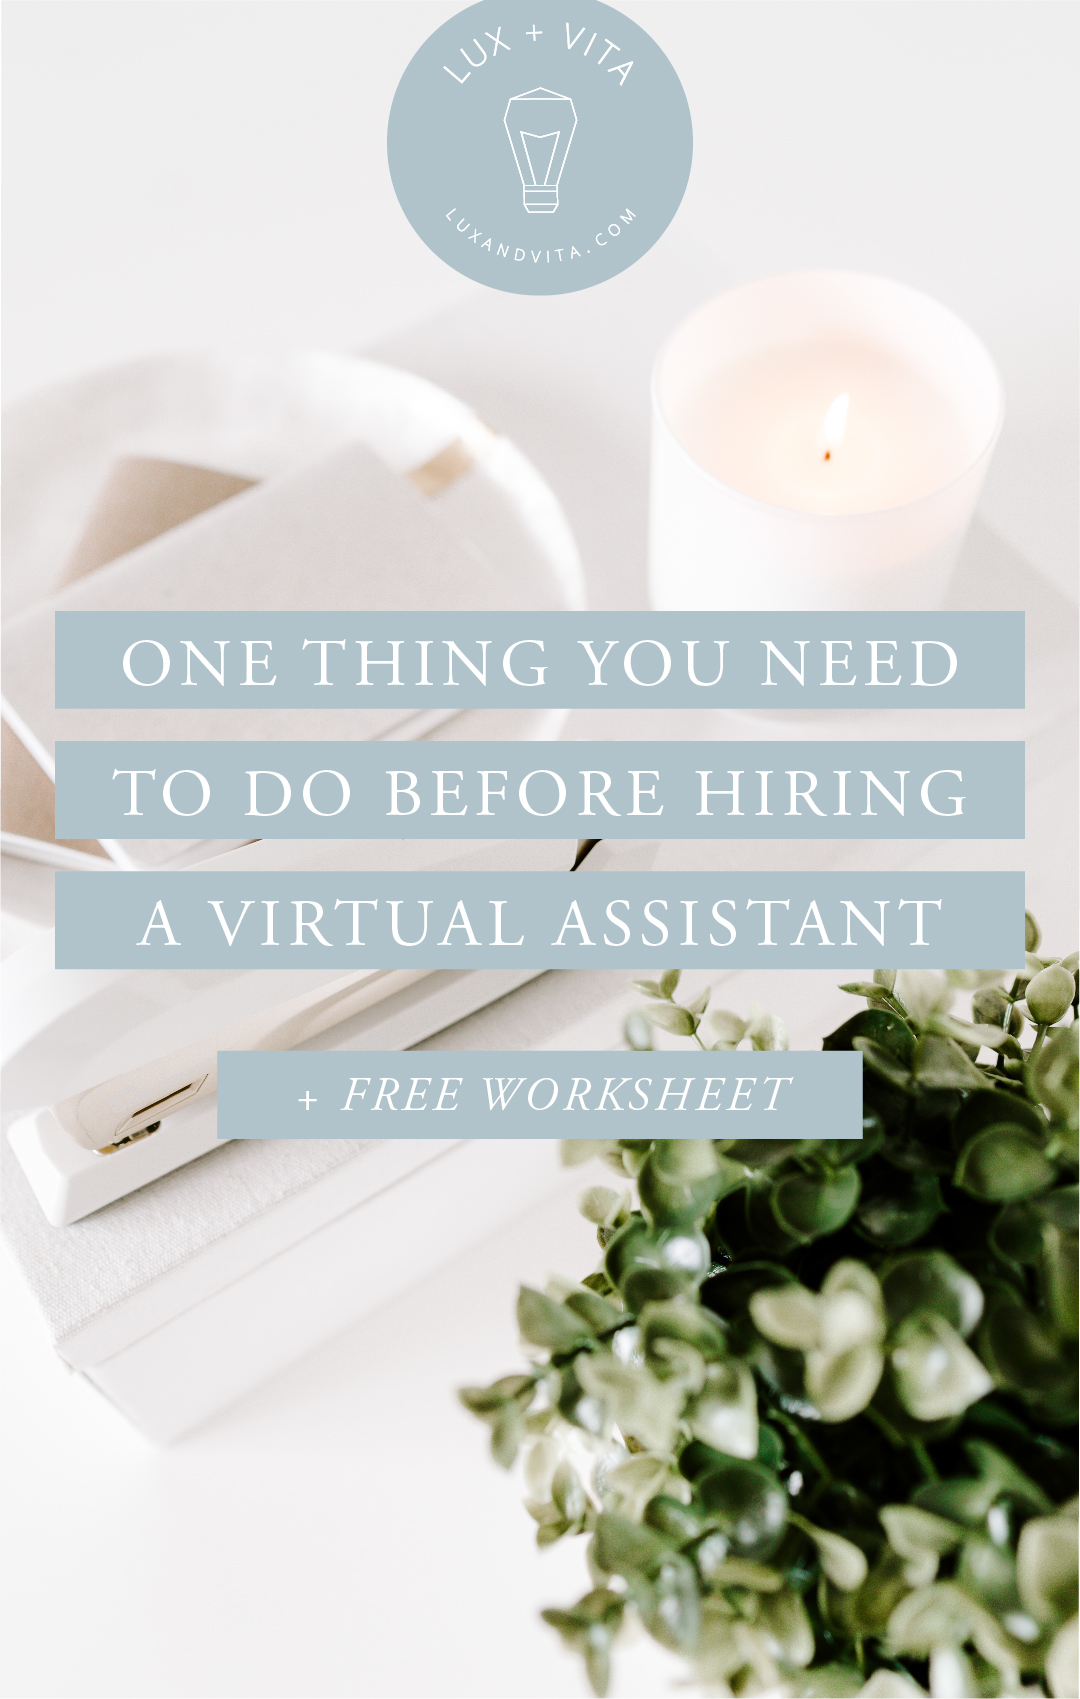 One thing you need to do before hiring a virtual assistant #hiringavirtualassistant #hiringava #virtualassistant #hiringhelp